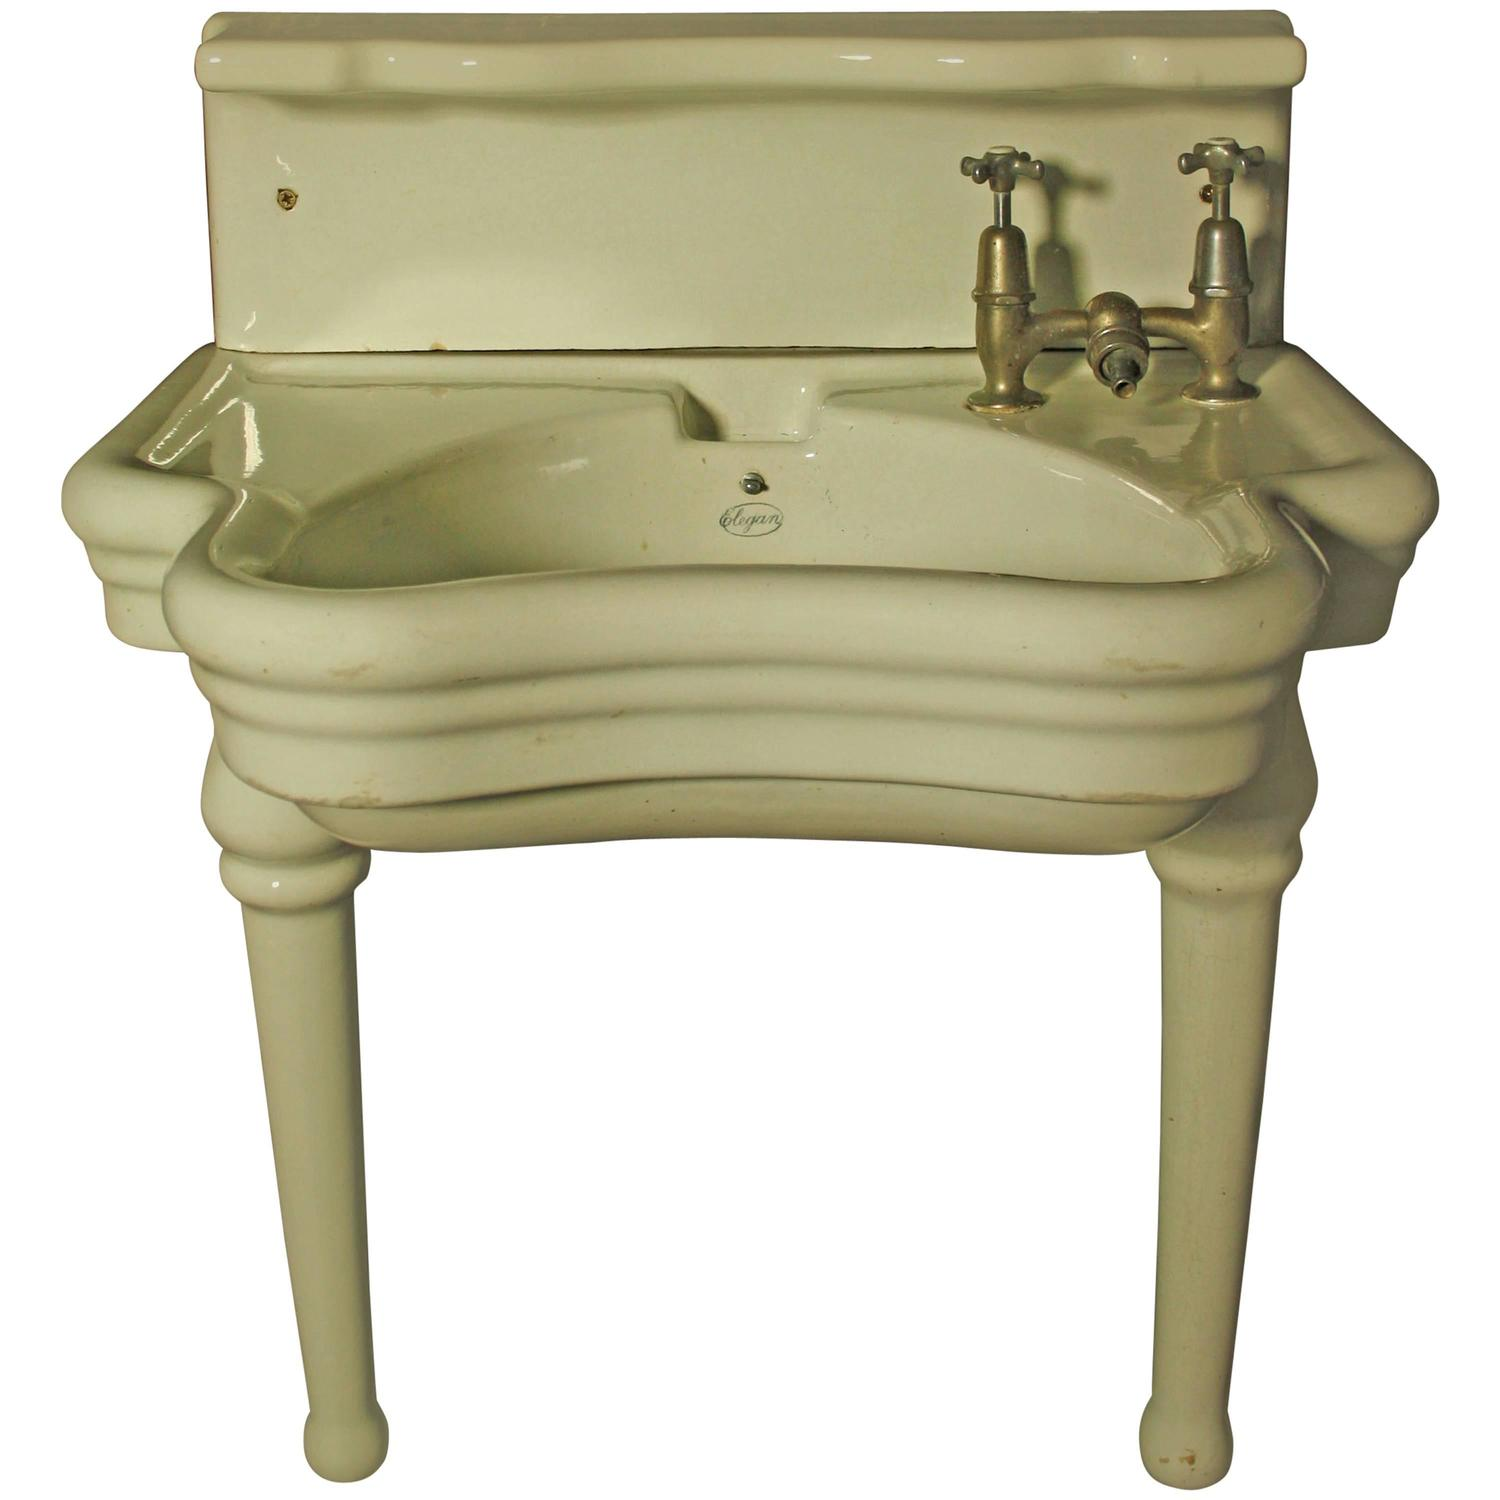 Rare English Barber Wash Basin Or Sink By Elegan For At 1stdibs